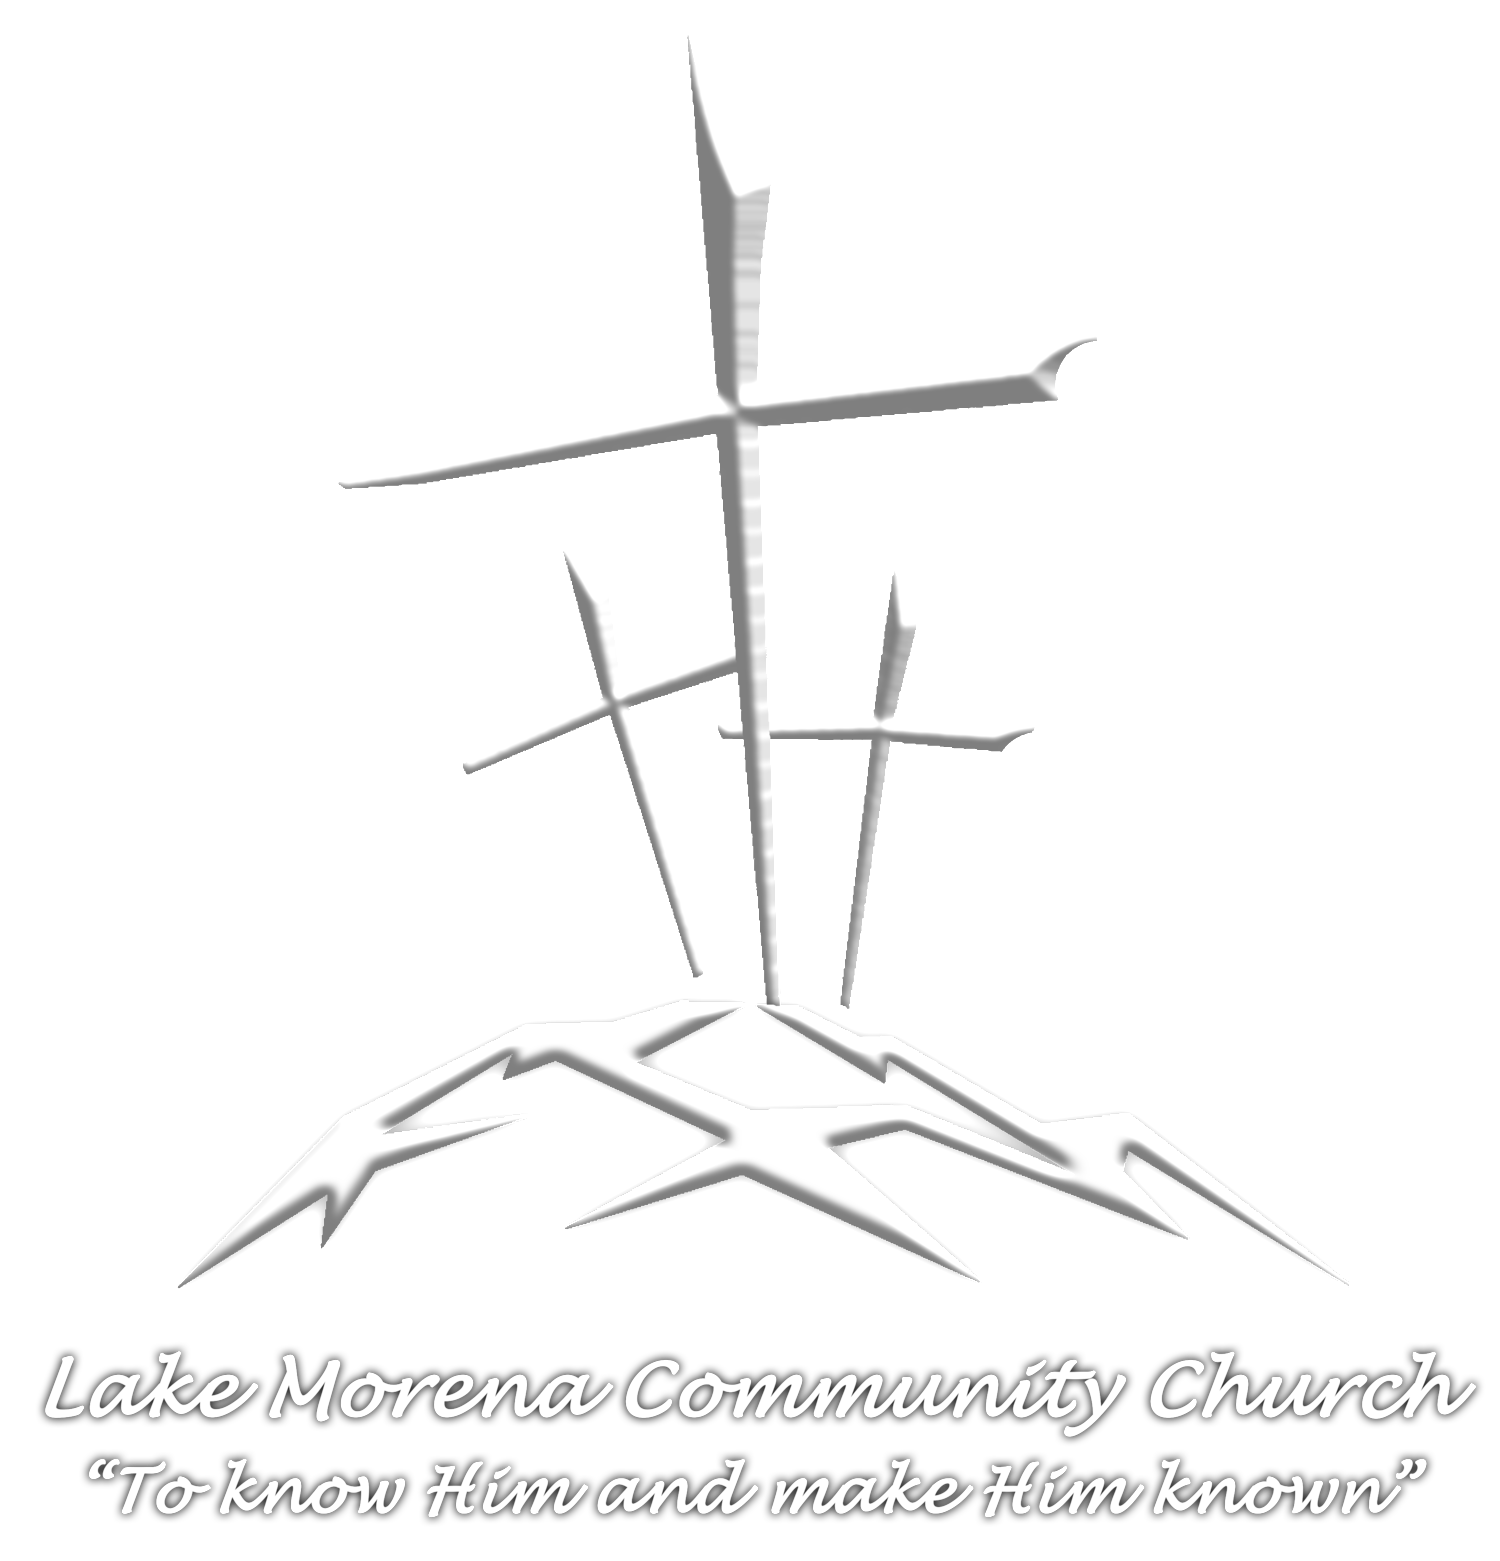 Lake Morena Community Church